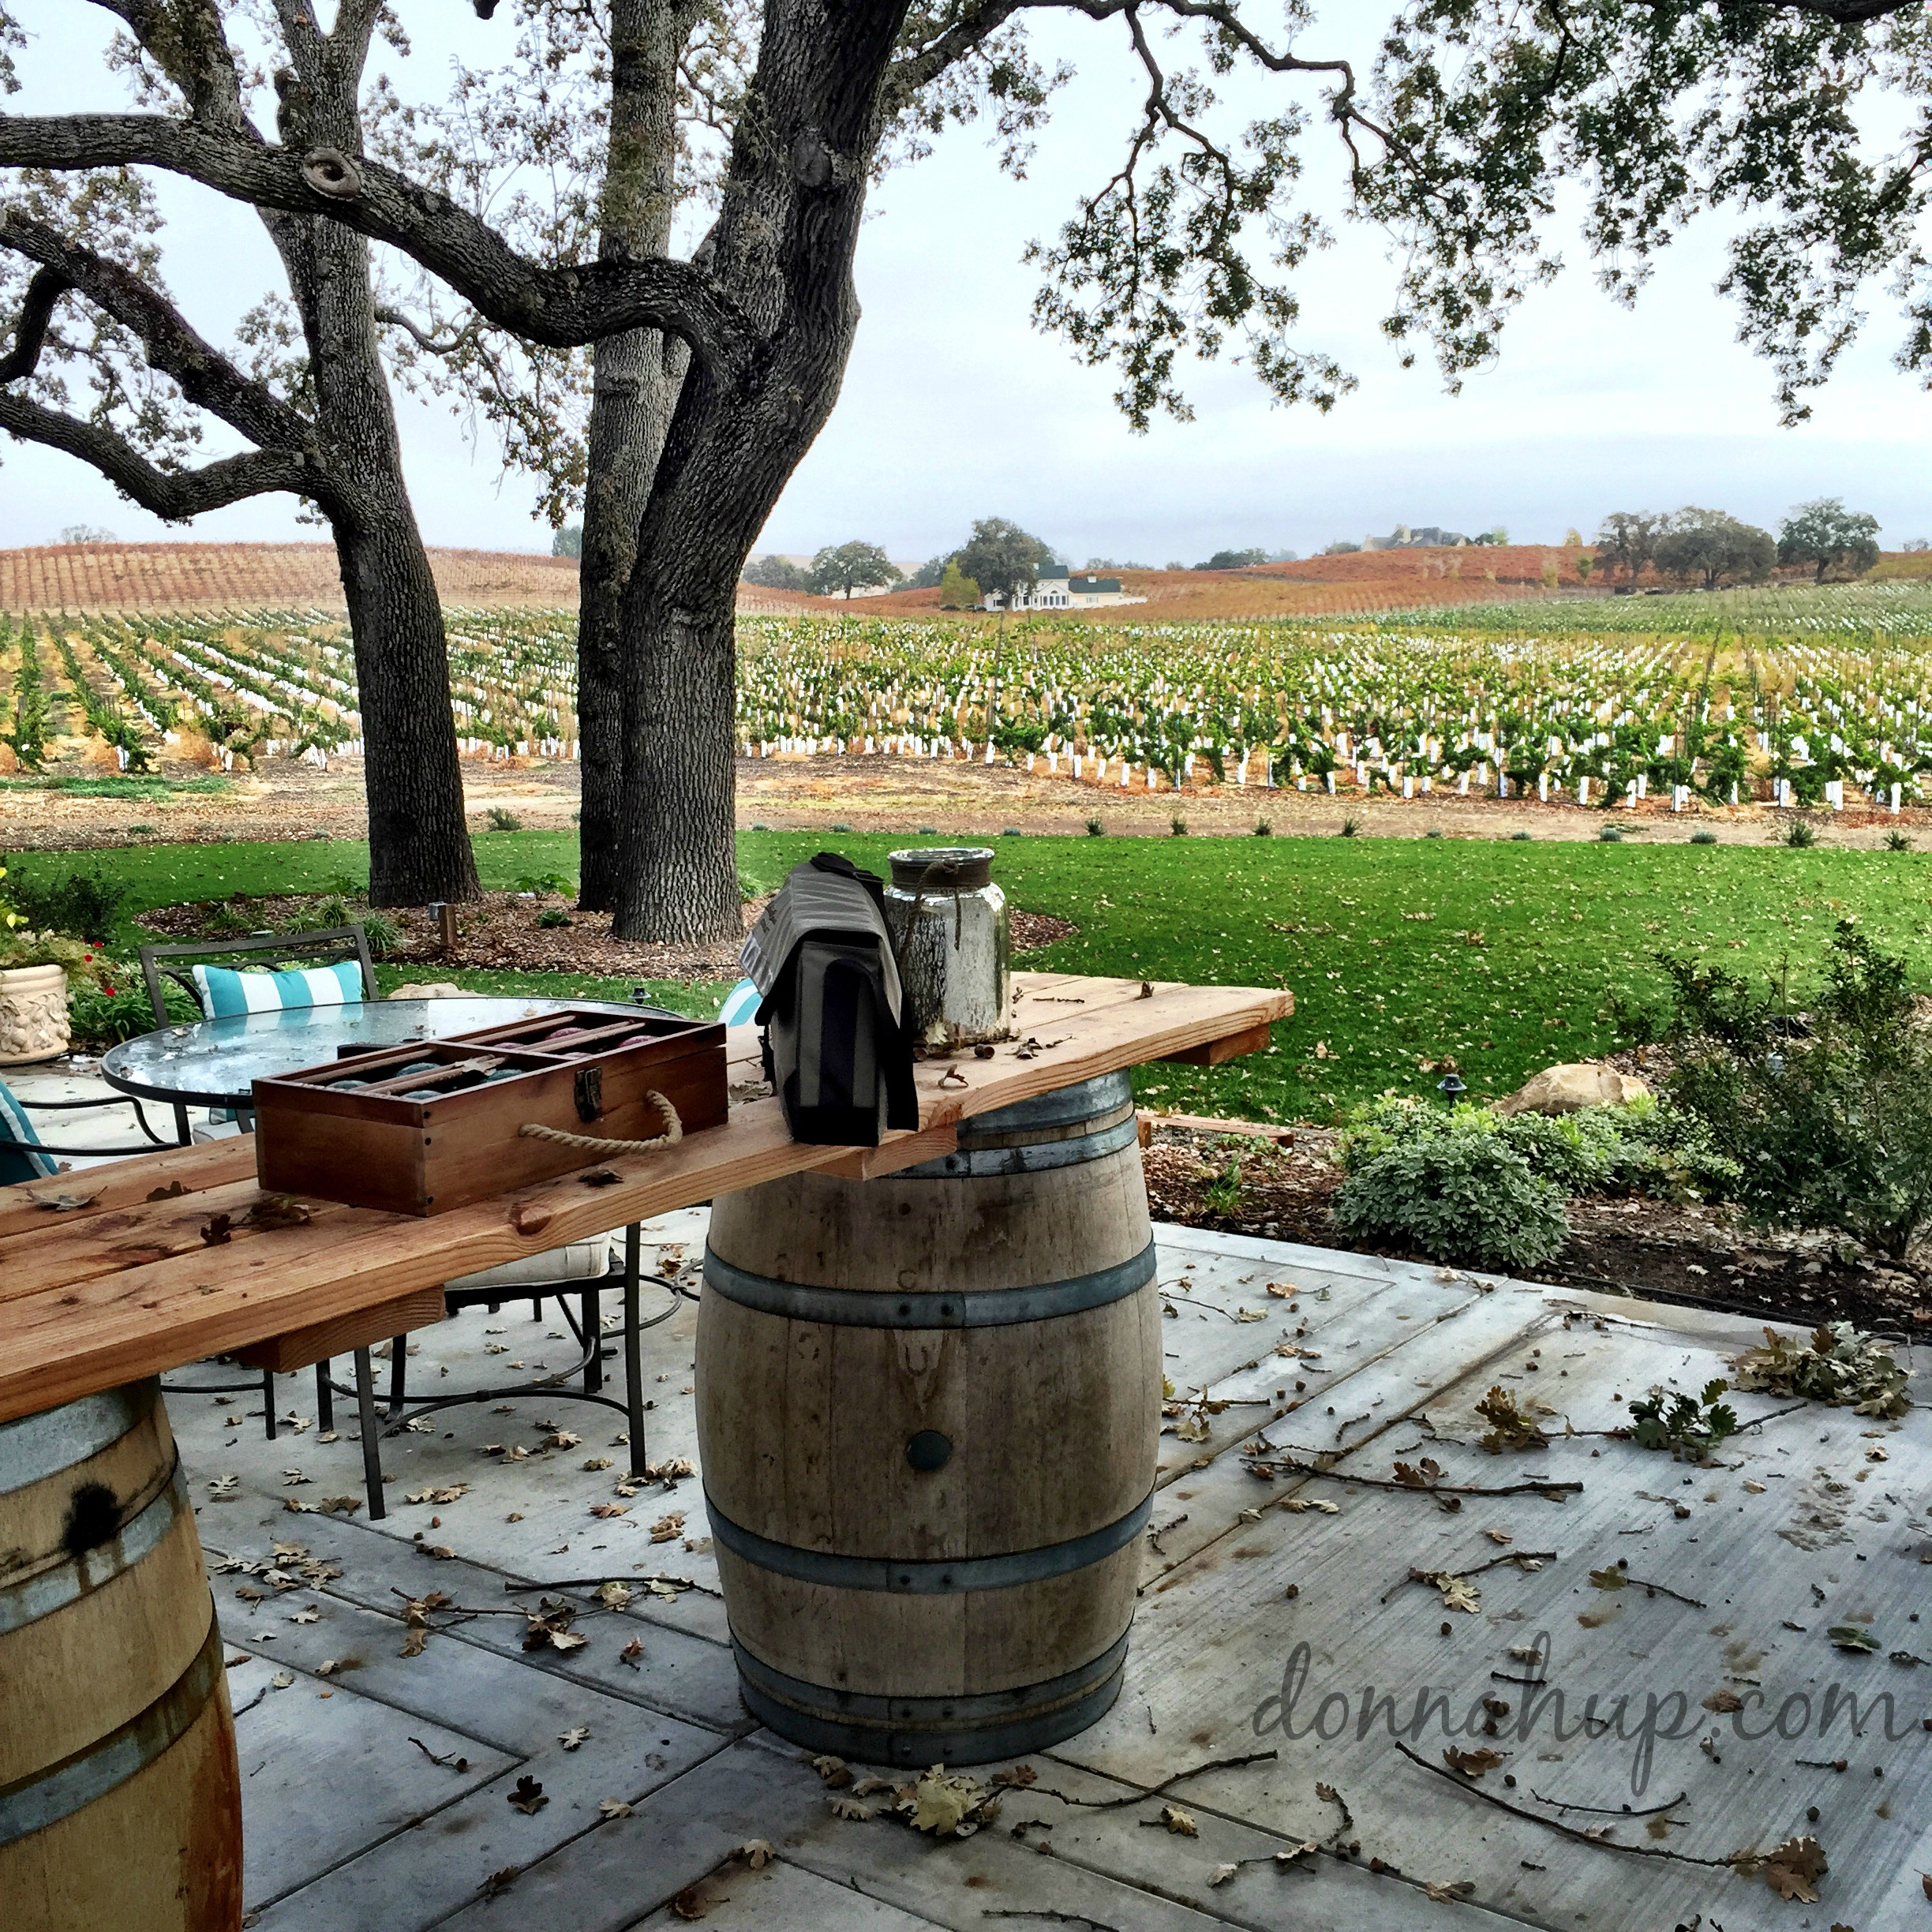 Summerwood Inn - The Perfect Wine Country Experience